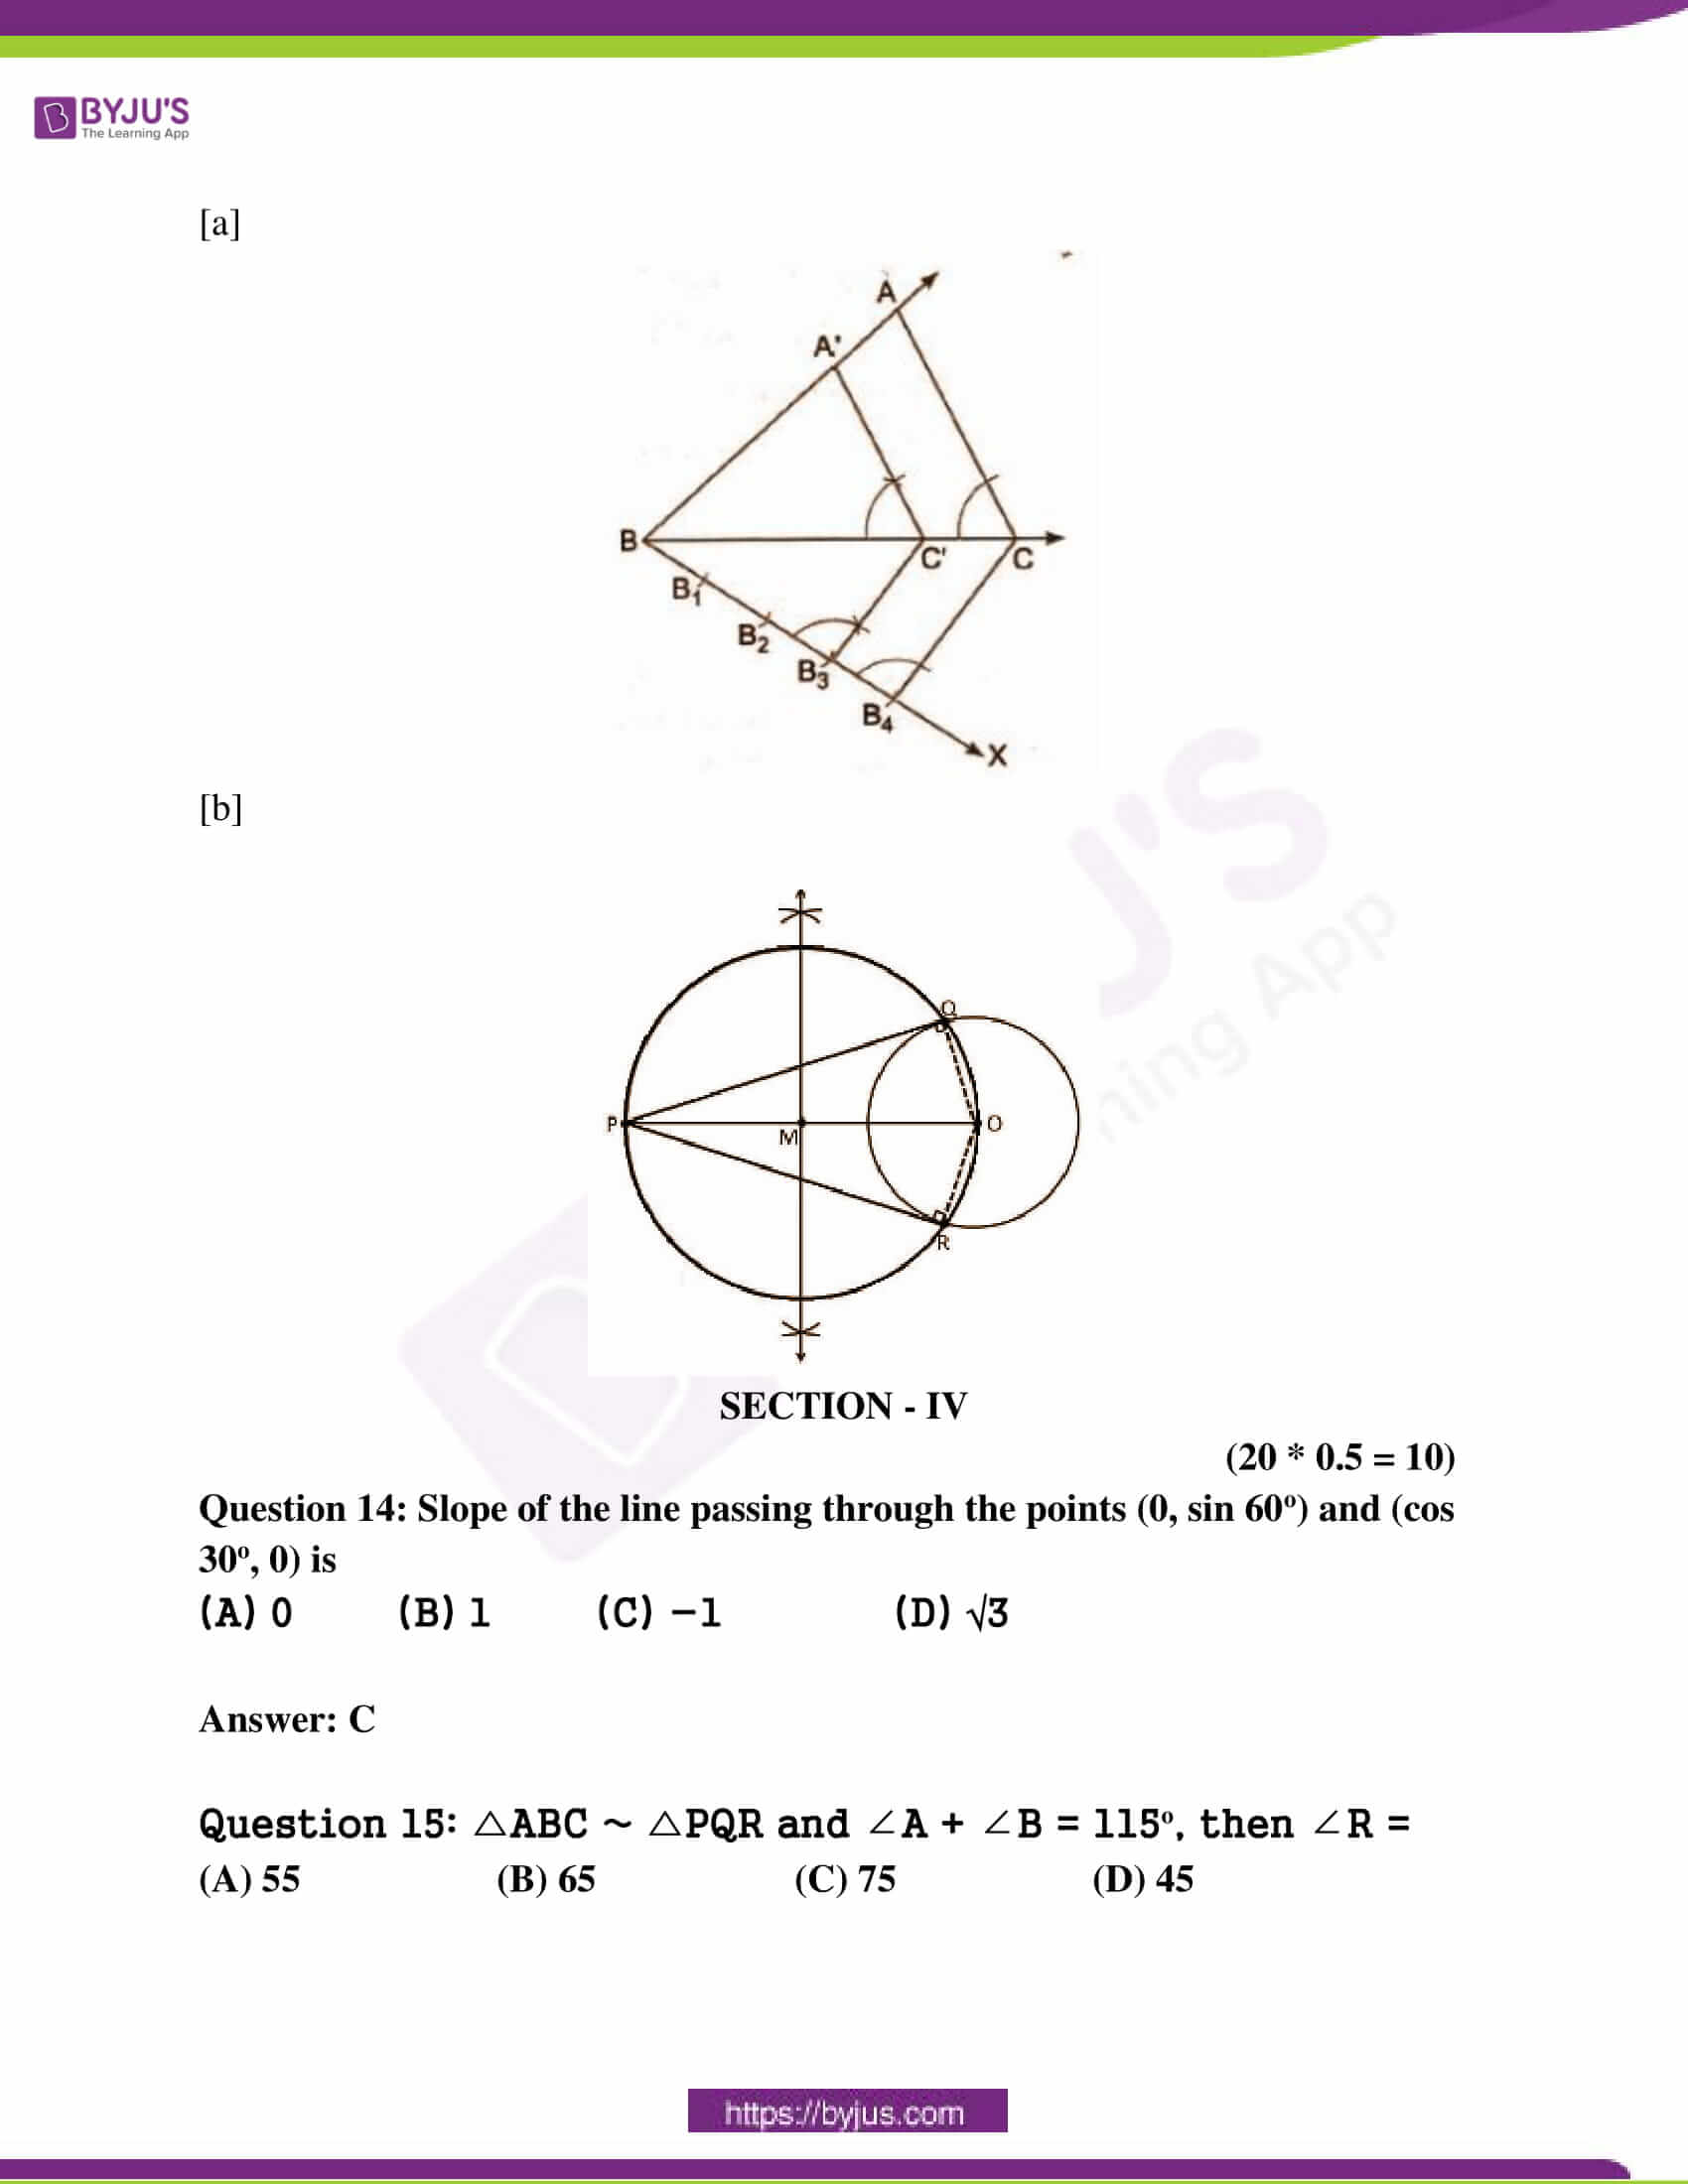 ap class 10 maths question paper 2 sol march 2018 11